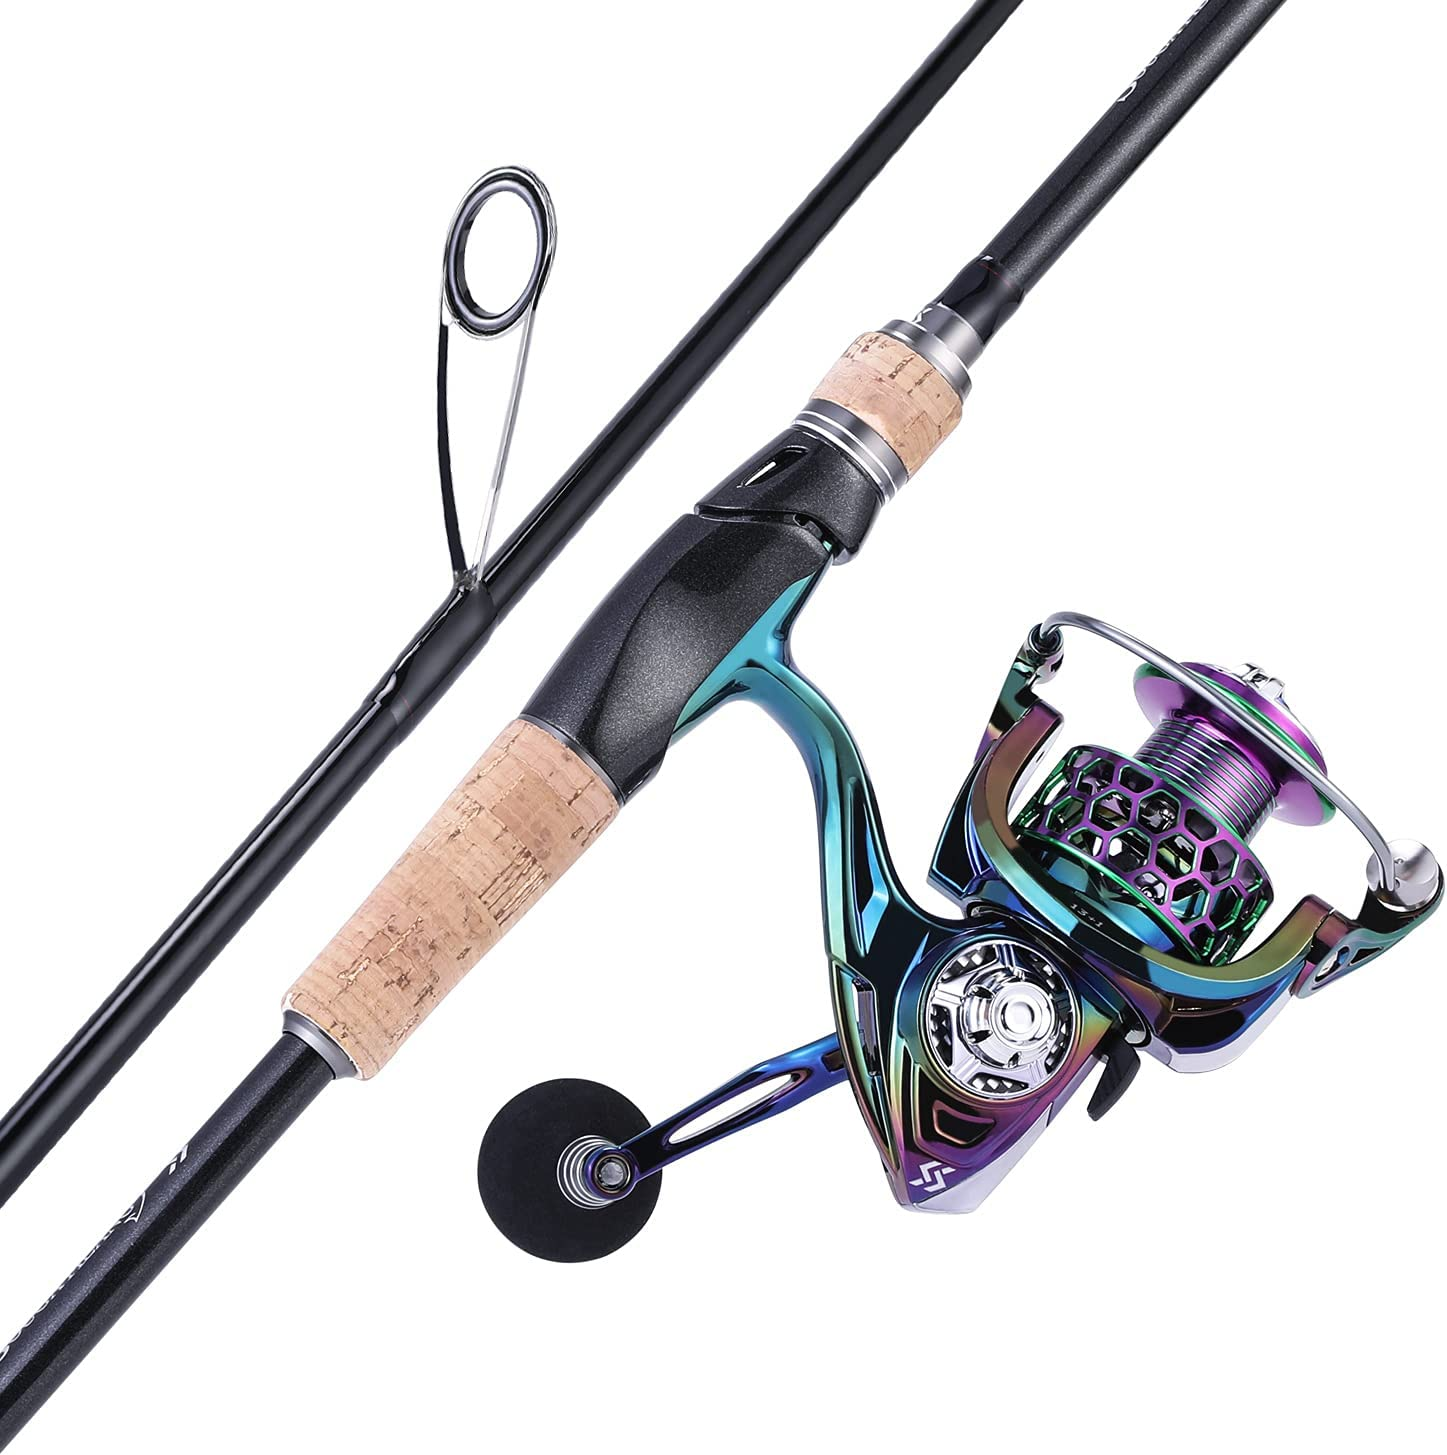 Max 88% OFF Sougayilang Fishing Rod Reel Combos Quality inspection 24 Carbon Spinnin Ton Fiber